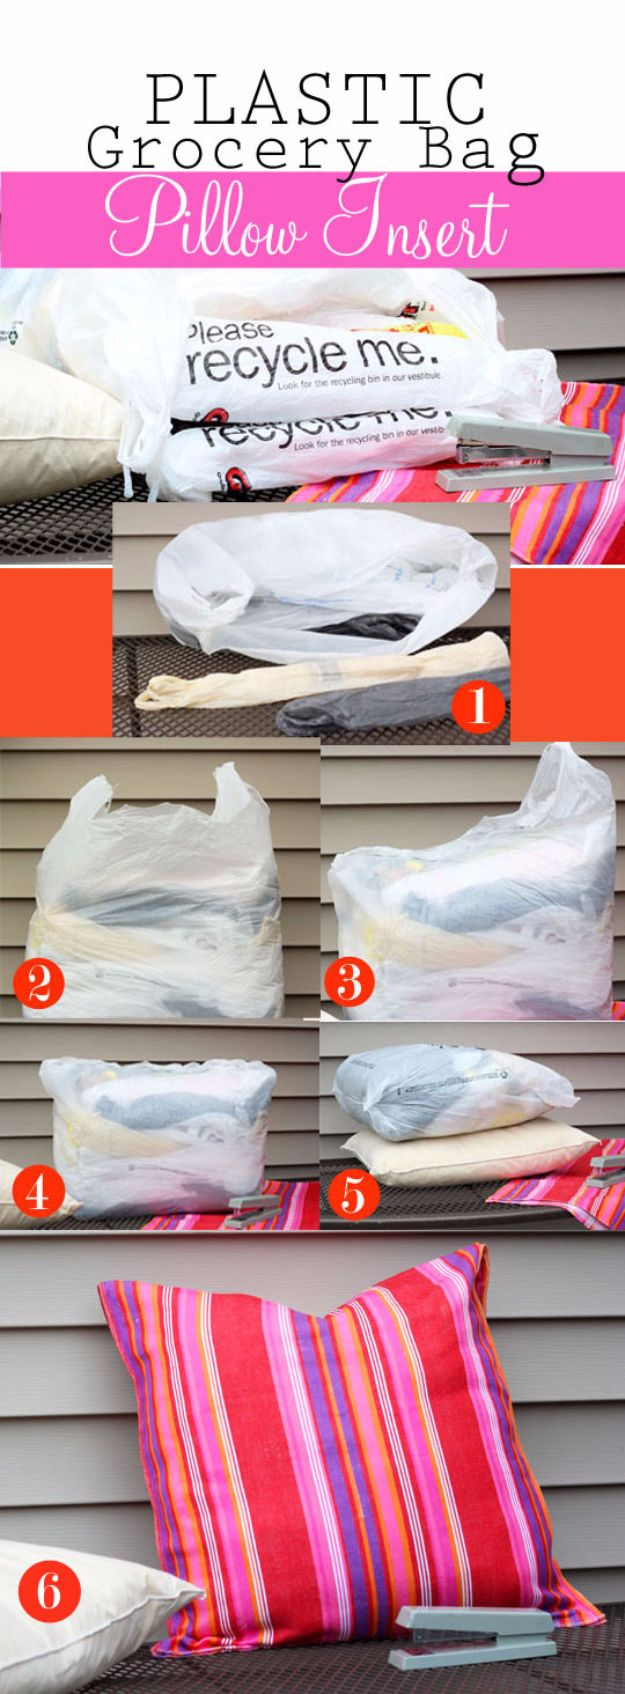 DIY Ideas With Plastic Bags - Plastic Grocery Bag Pillow Insert - How To Make Fun Upcycling Ideas and Crafts - Awesome Storage Projects Using Recycling - Coolest Craft Projects, Life Hacks and Ways To Upcycle a Plastic Bag #recycling #upcycling #crafts #diyideas